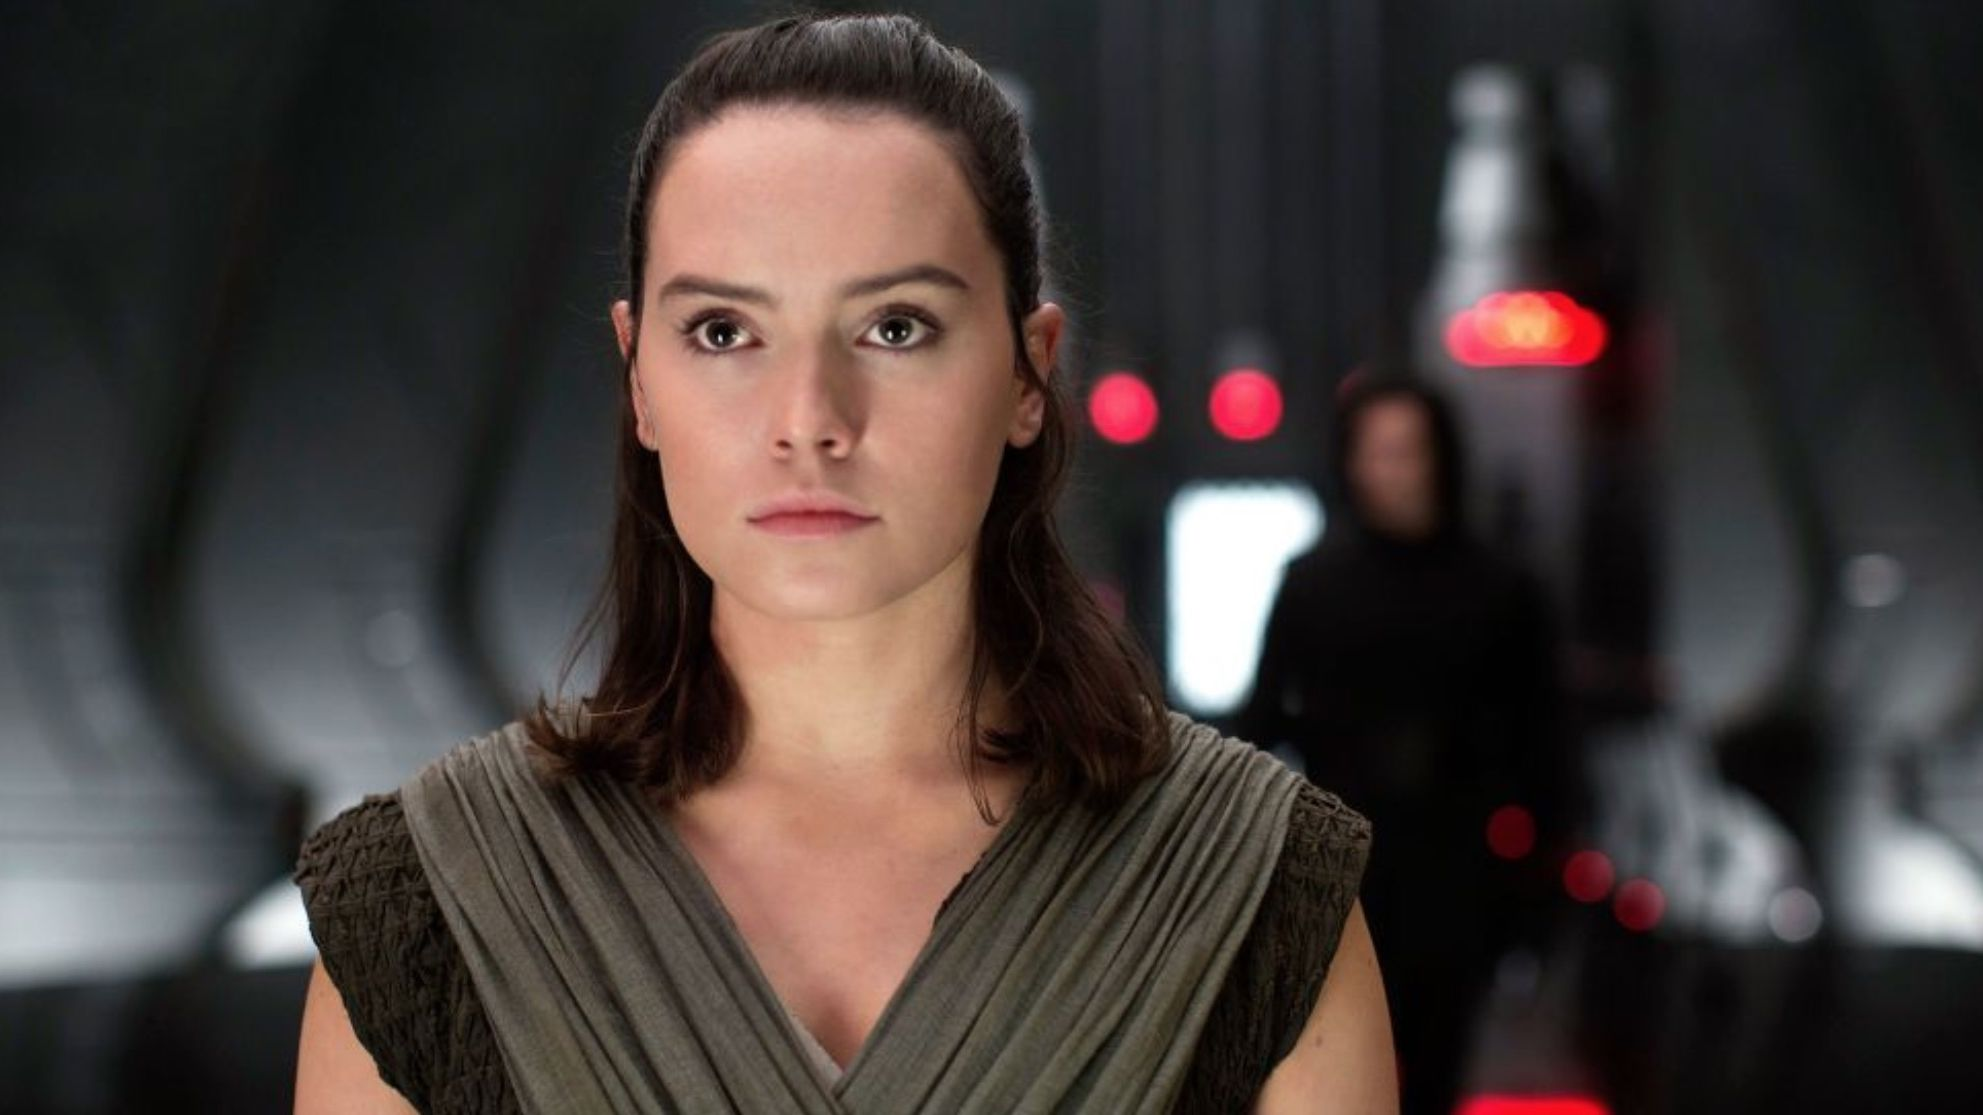 New Star Wars The Rise Of Skywalker Fan Theory Suggests An Emotional End For Kylo Ren And Rey Mental Floss